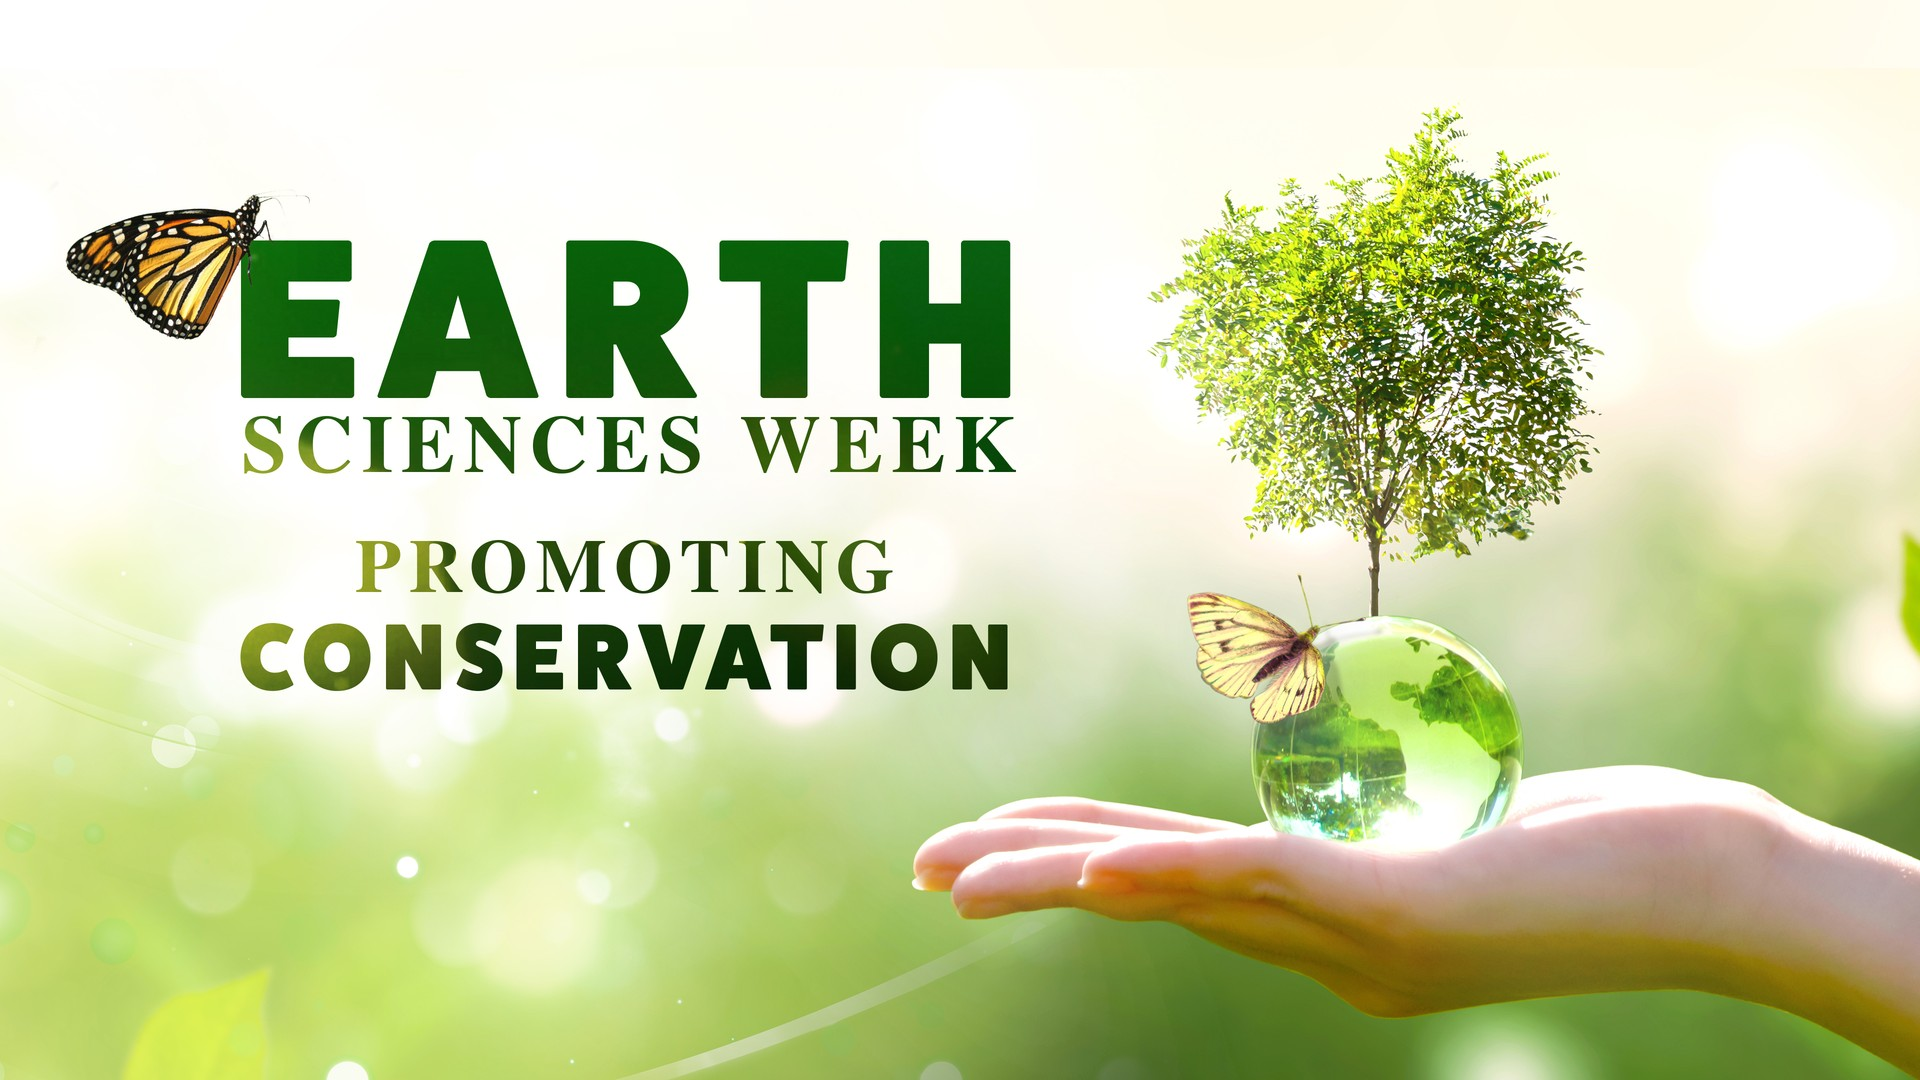 Earth Sciences Week: Promoting Conservation